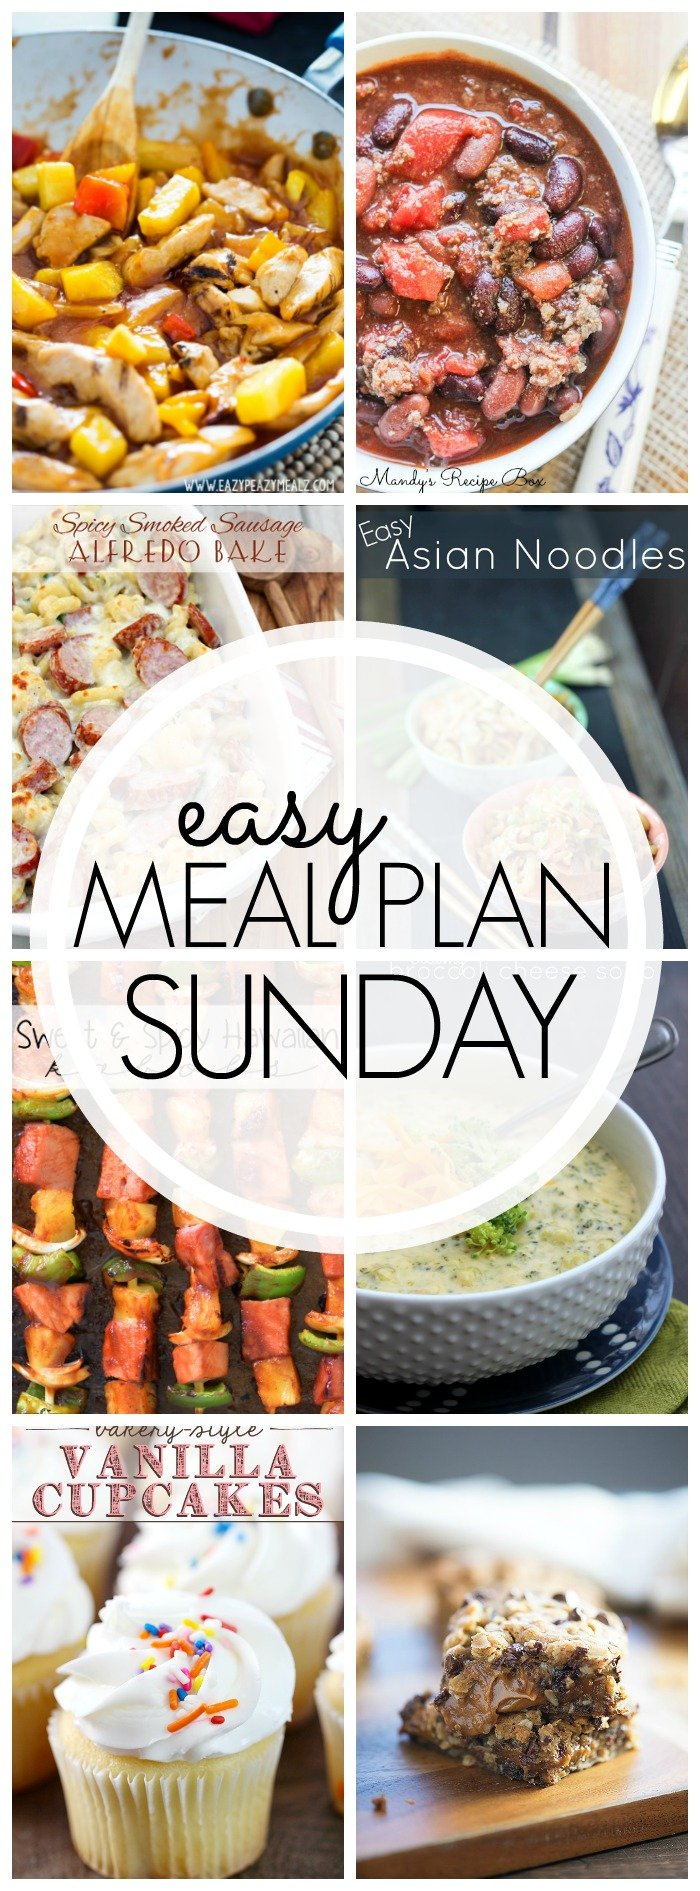 EASY MEAL PLAN – Week 45 - 7 delicious dinners and 2 desserts!